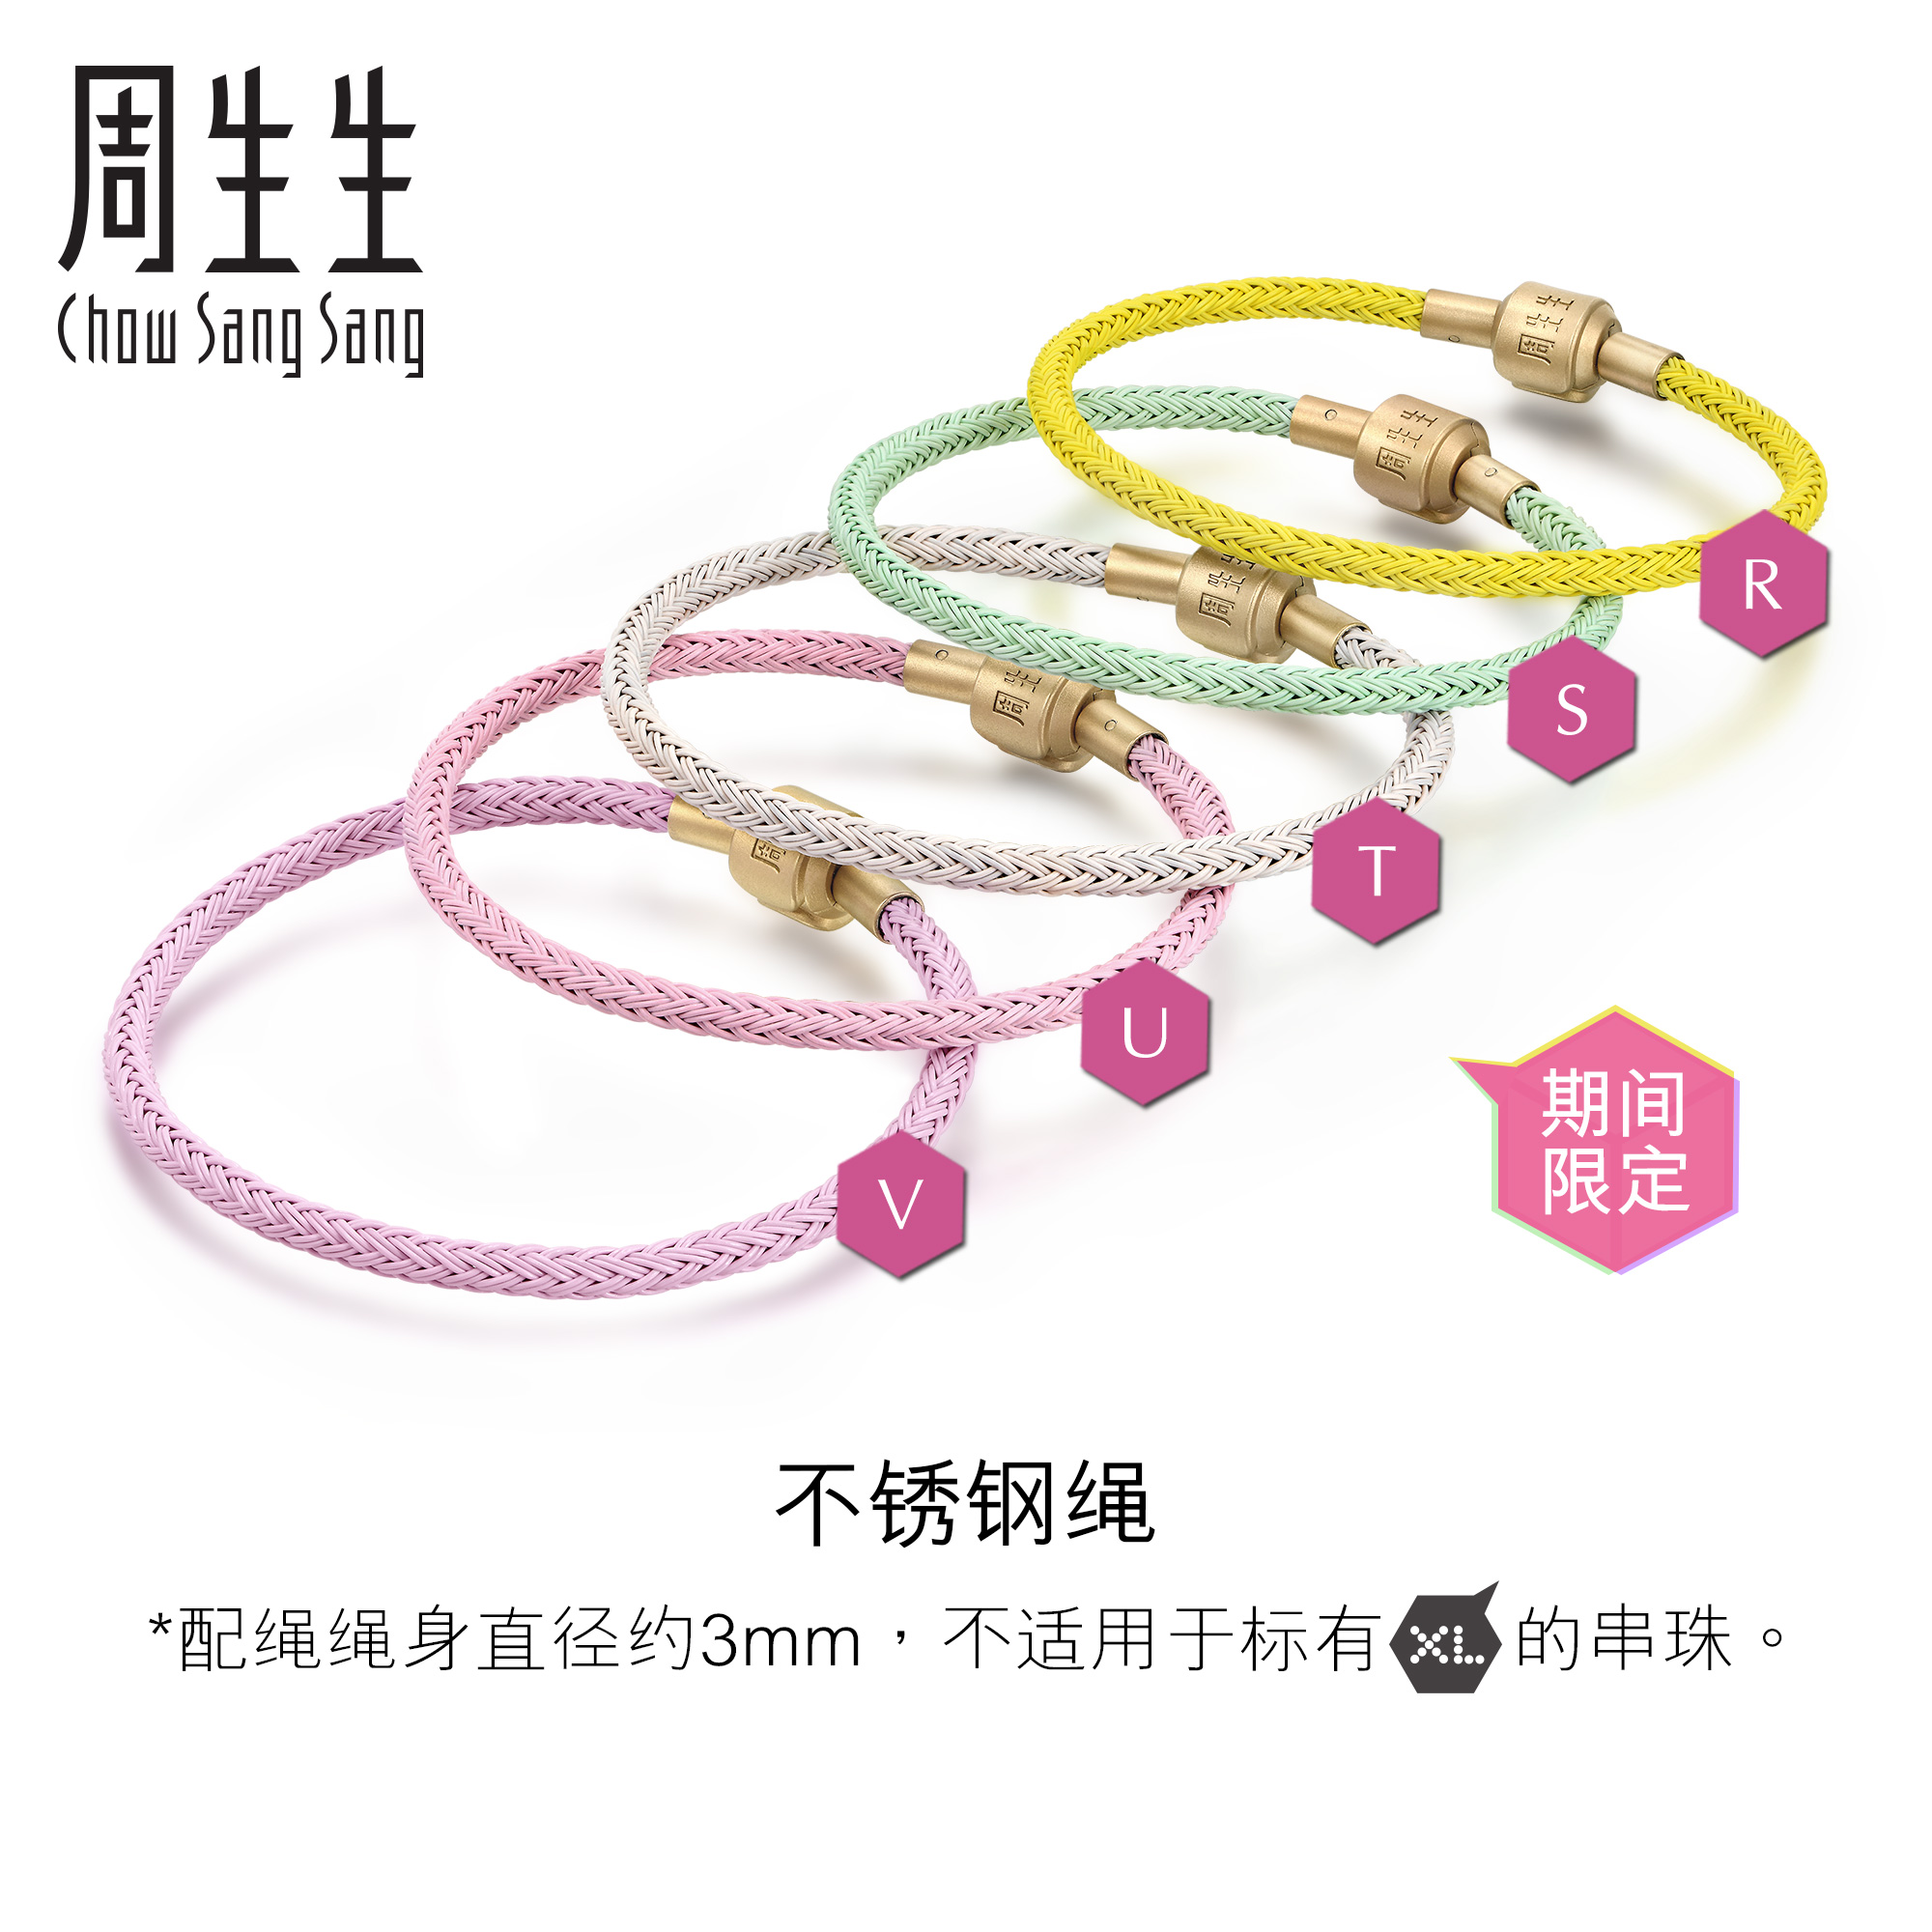 (String) Zhou Shengsheng Chame with rope 3mm hand rope hand錬 transfer bead stainless steel rope